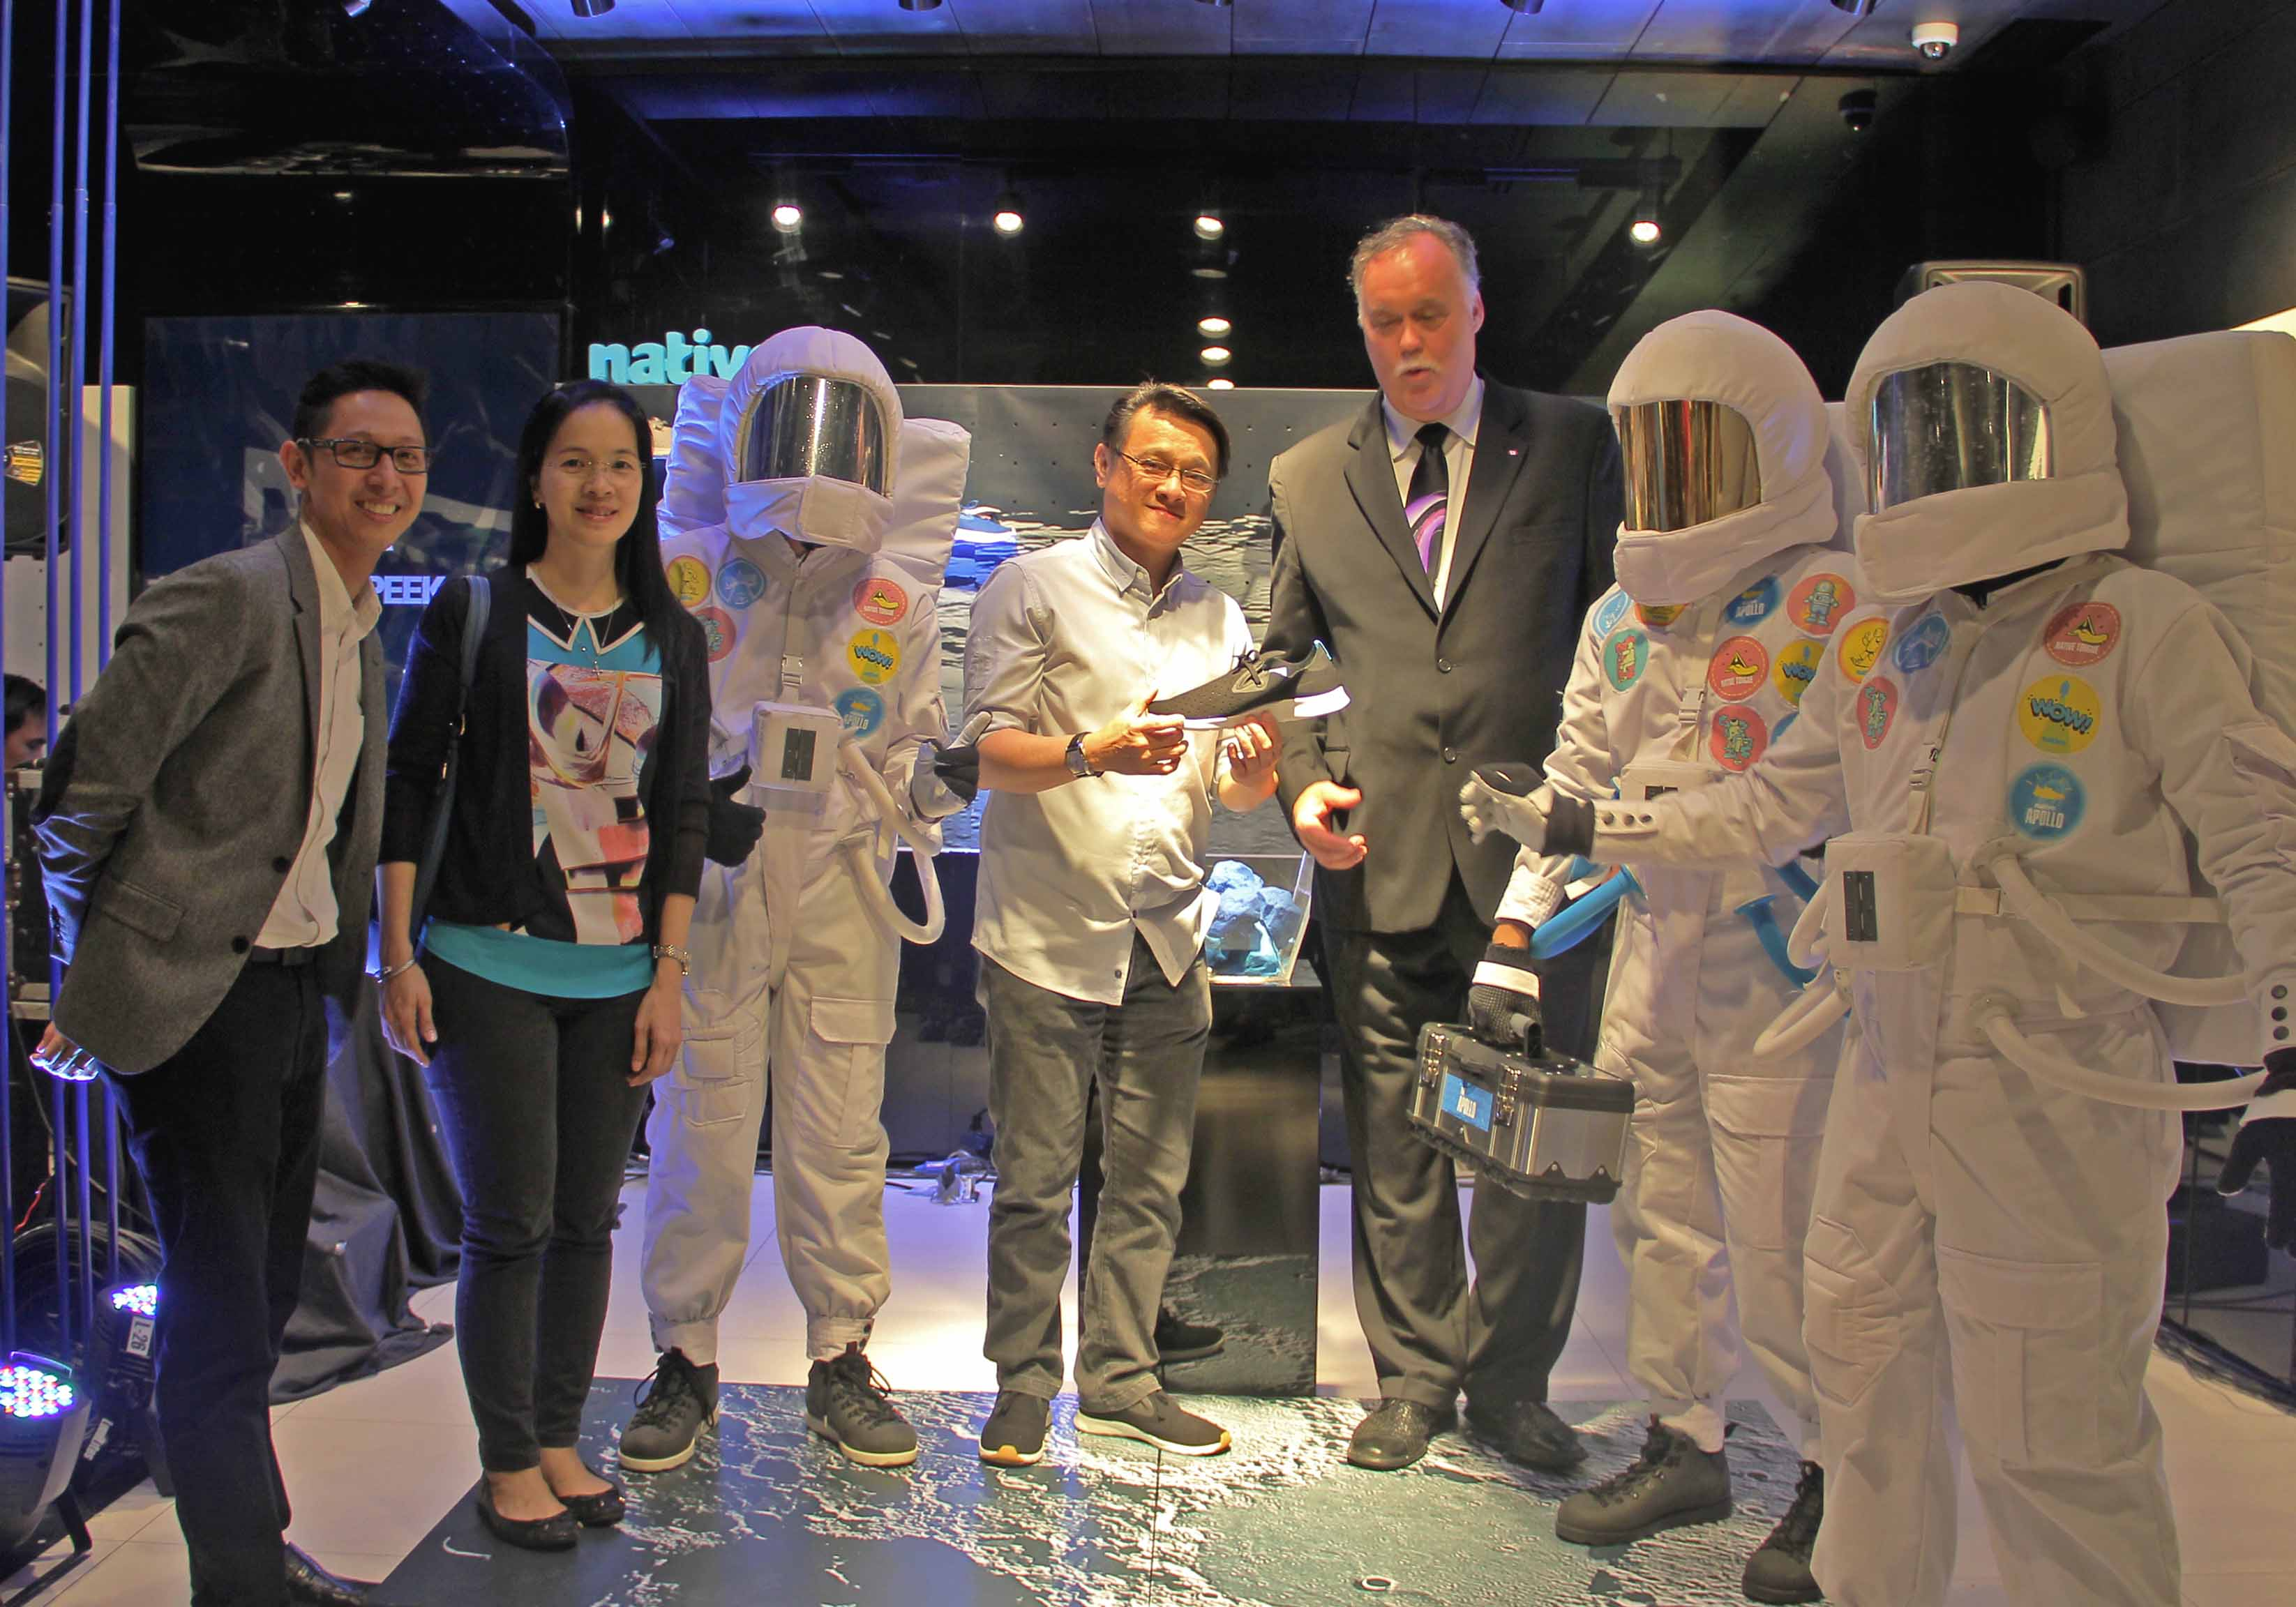 Primer's AVP & SBU Head Toti Wong,Ms Ruby Uy, PGII's Managing Director Toti Wong, and Canadian Ambassador Neil Reider witht the Native Apollo's Astronauts